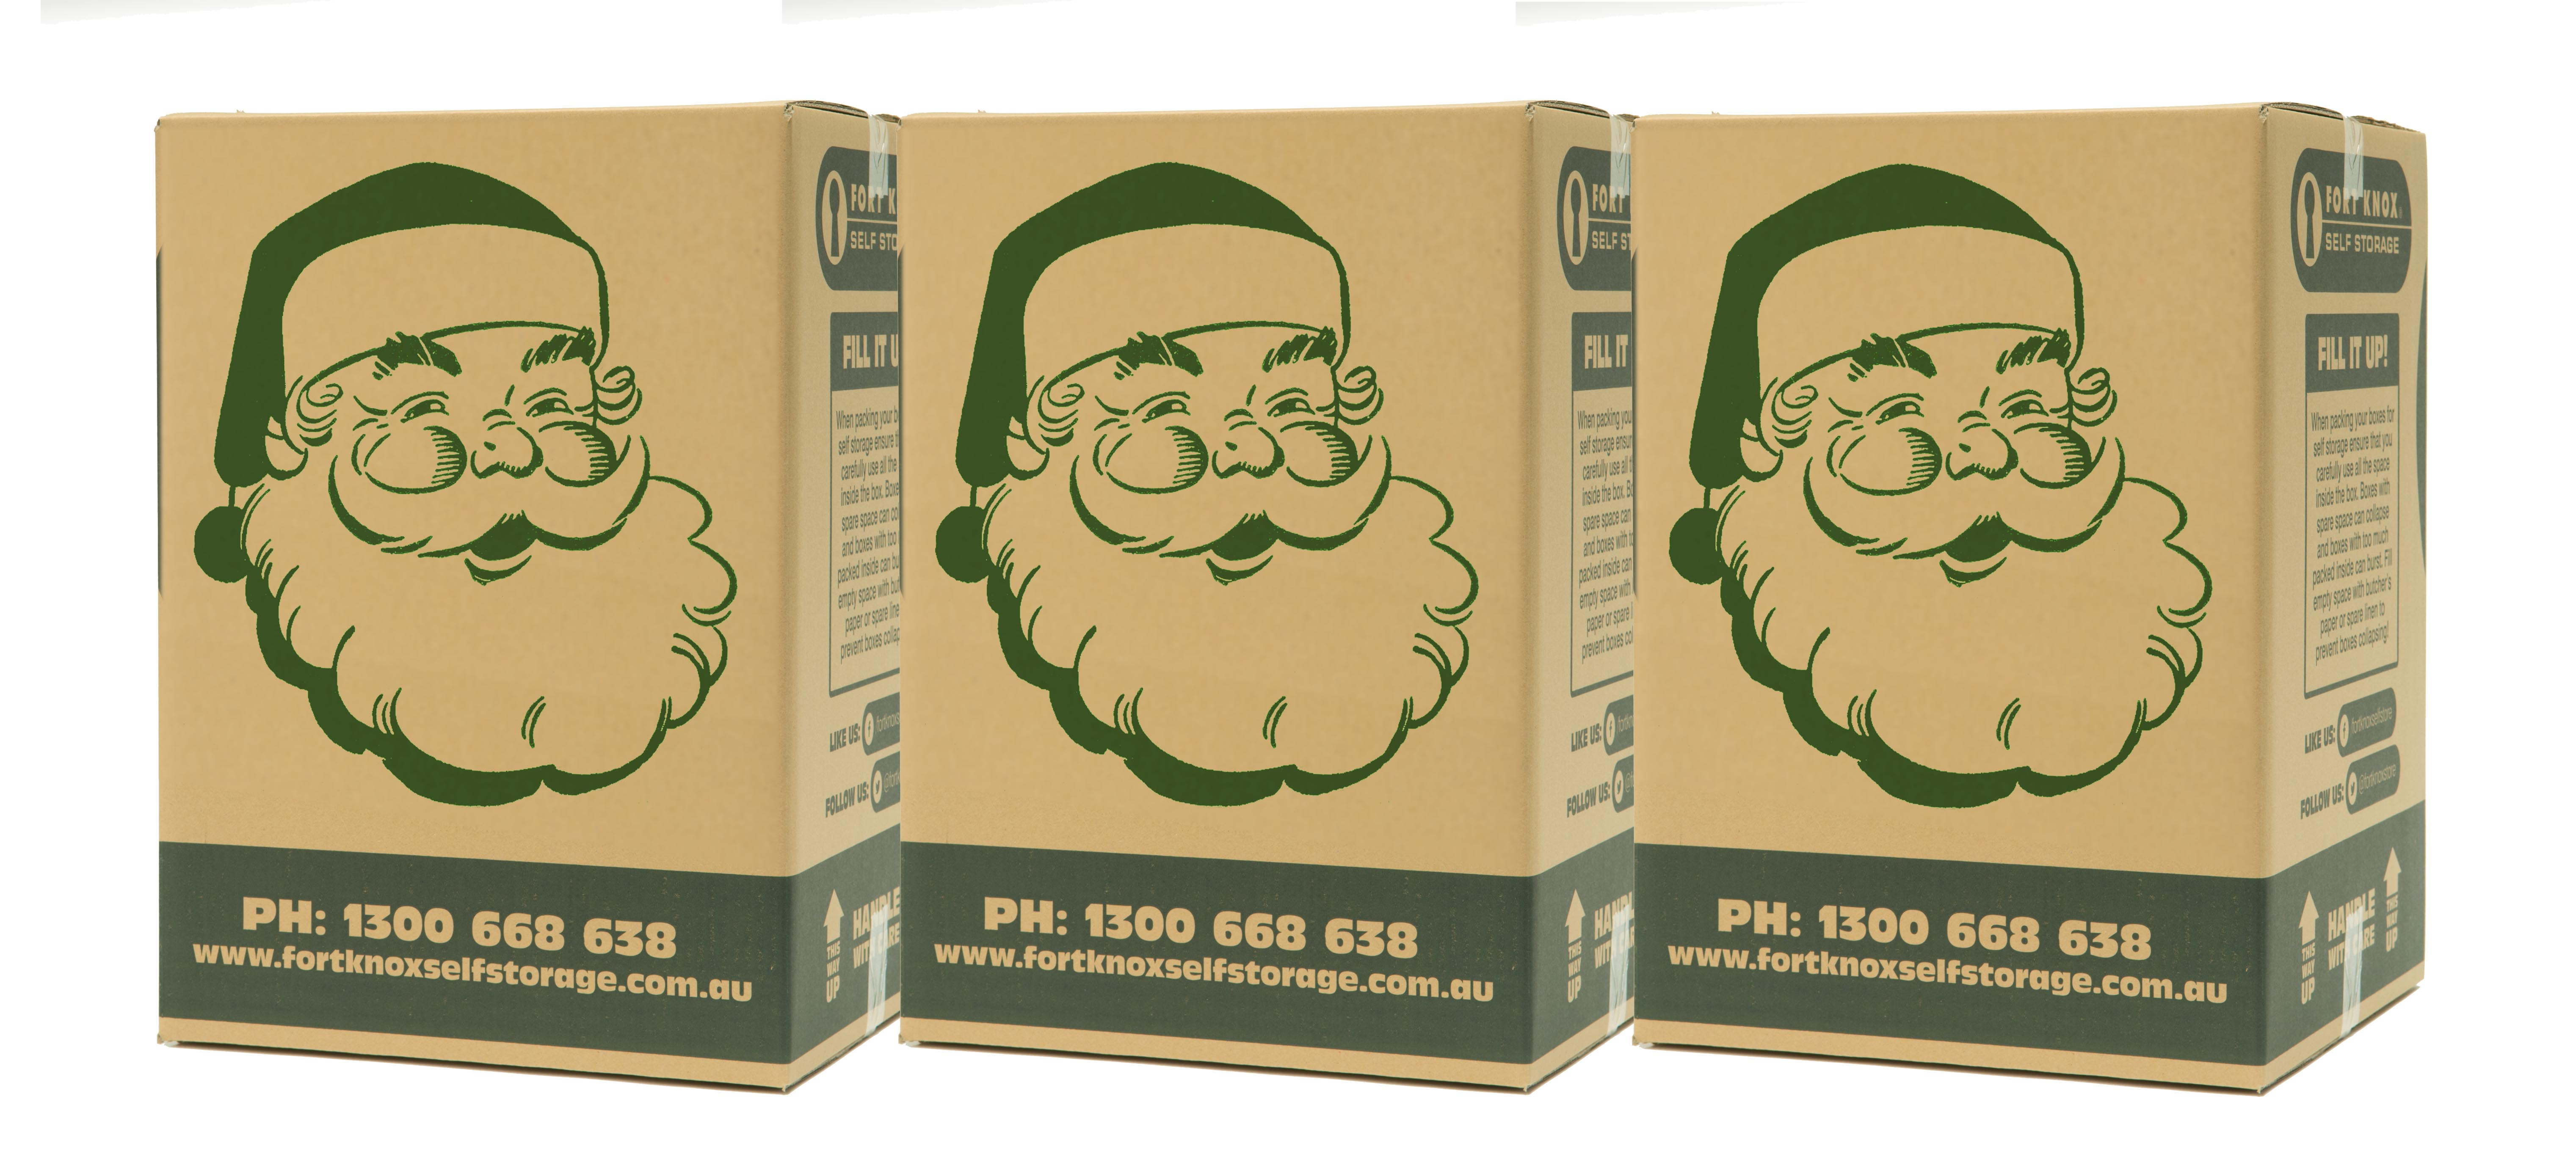 Fort Knox Boxes with Santa on them